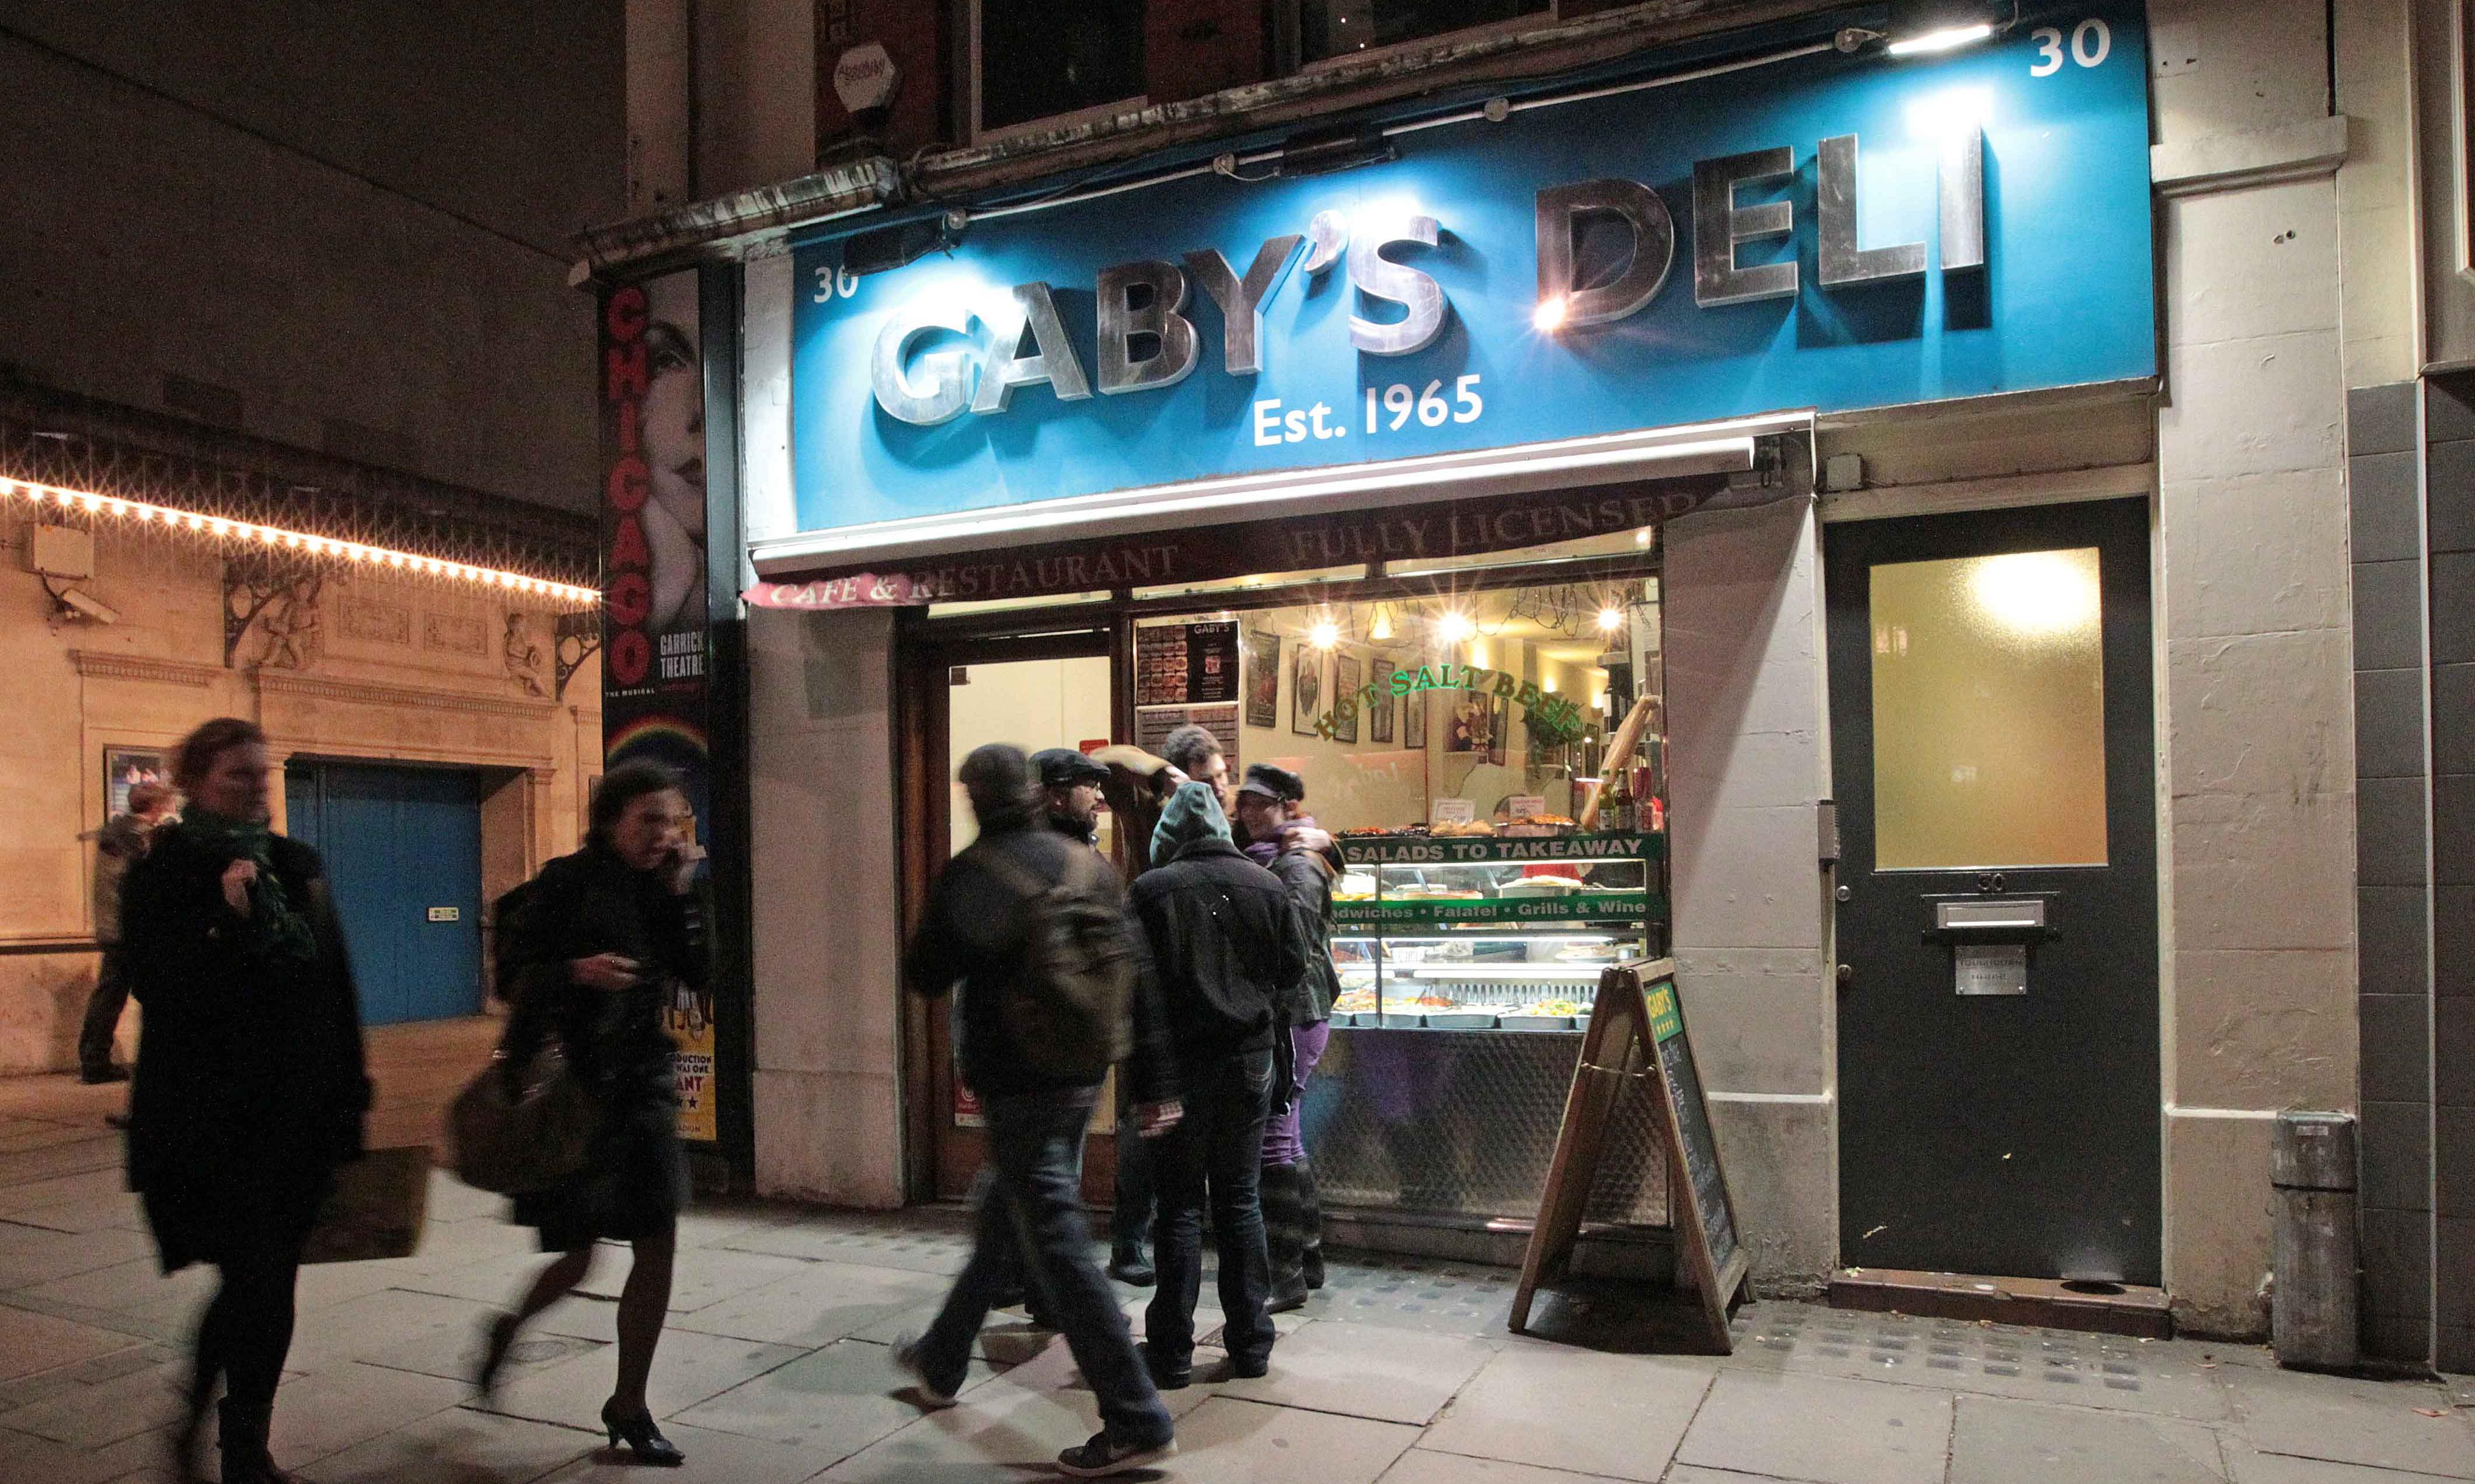 More than 50 years on, central London Jewish deli Gaby's is to close